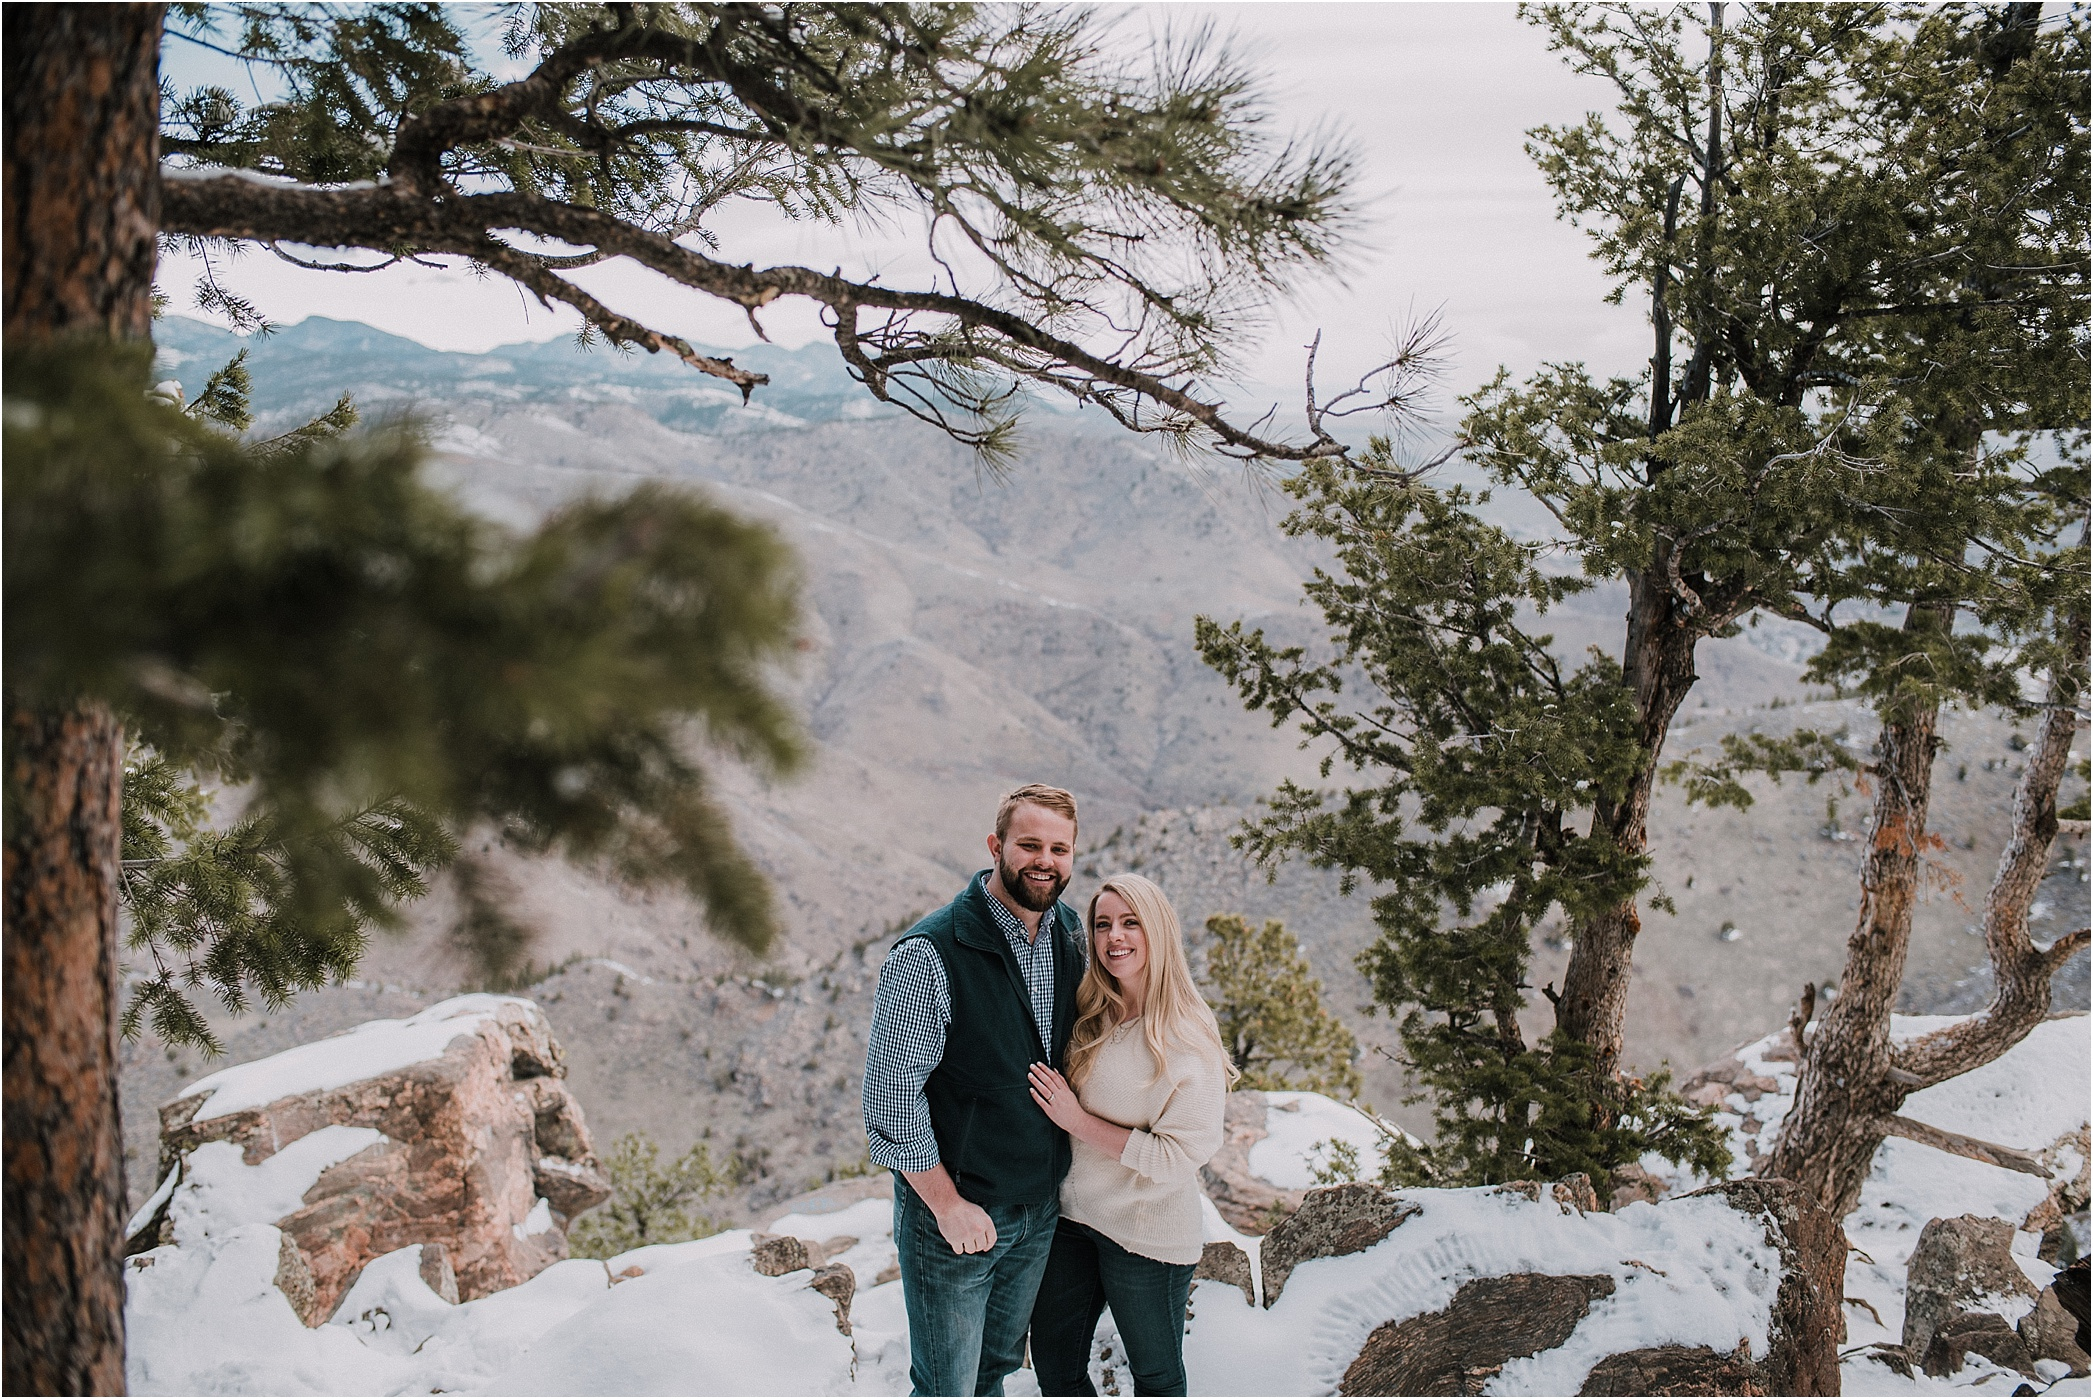 Mt Falcon Engagement Session, Windy Saddle Engagement, Colorado Engagement Photos, Denver Engagement Photos, Colorado Engagement Photographer, Denver Engagement Photographer, Colorado Videographer, Denver Videographer, Mountain Engagement Photos, Engagement photo outfit ideas, Forest Engagement session